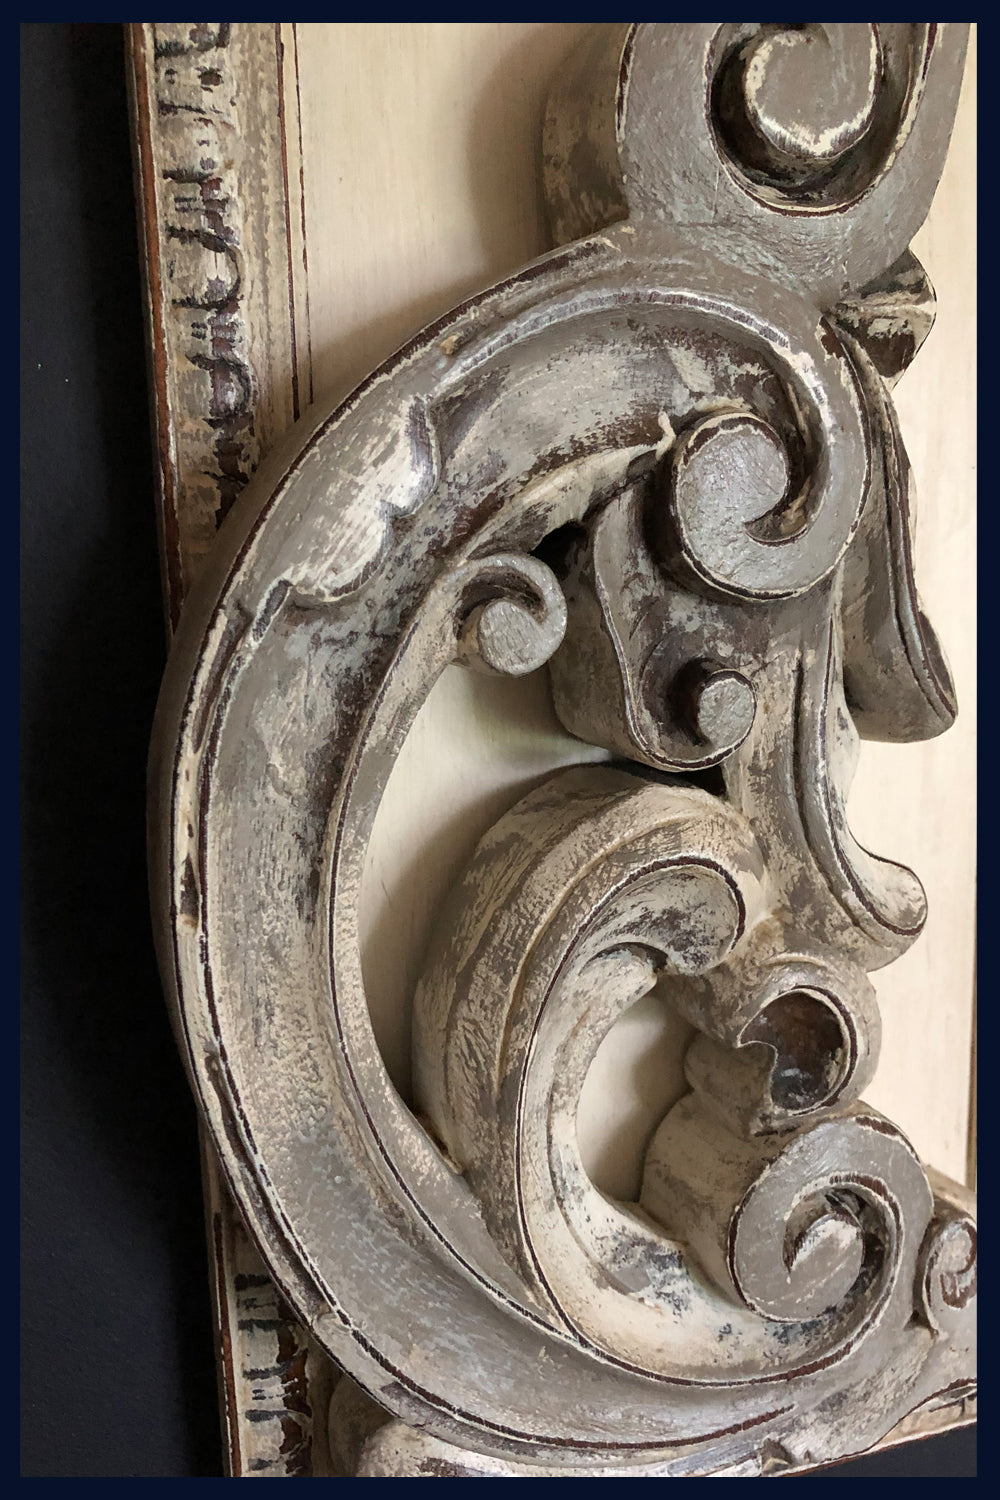 Wonderland Collection: Framed Antique Architectural Detail/Wood Carving